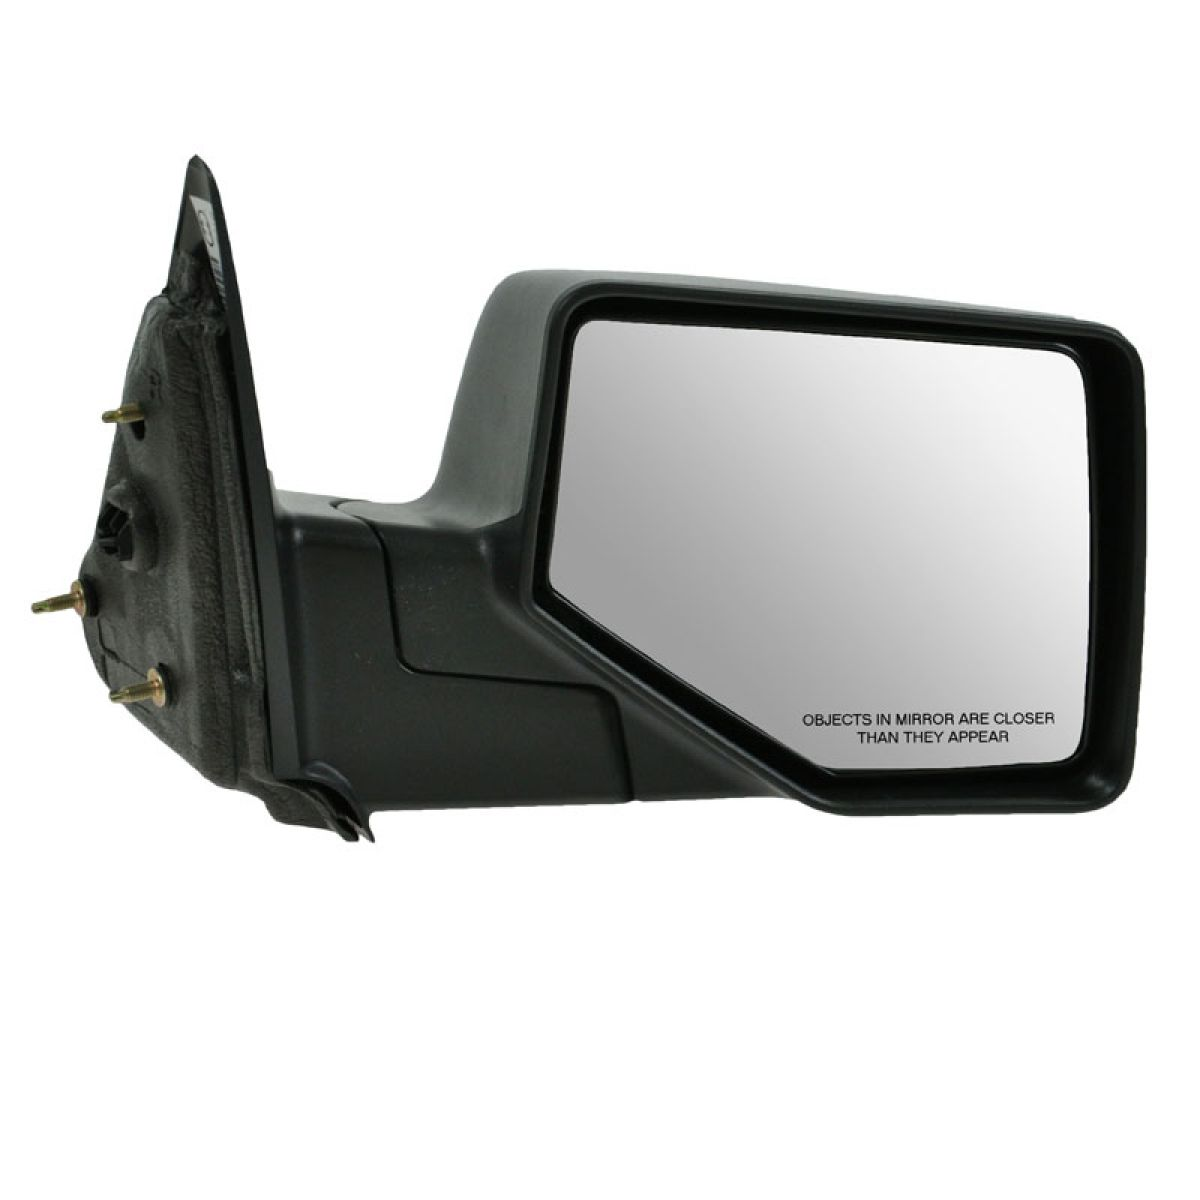 Mirror Manual Textured Black Left LH Driver Side for 06-11 Ford Ranger New